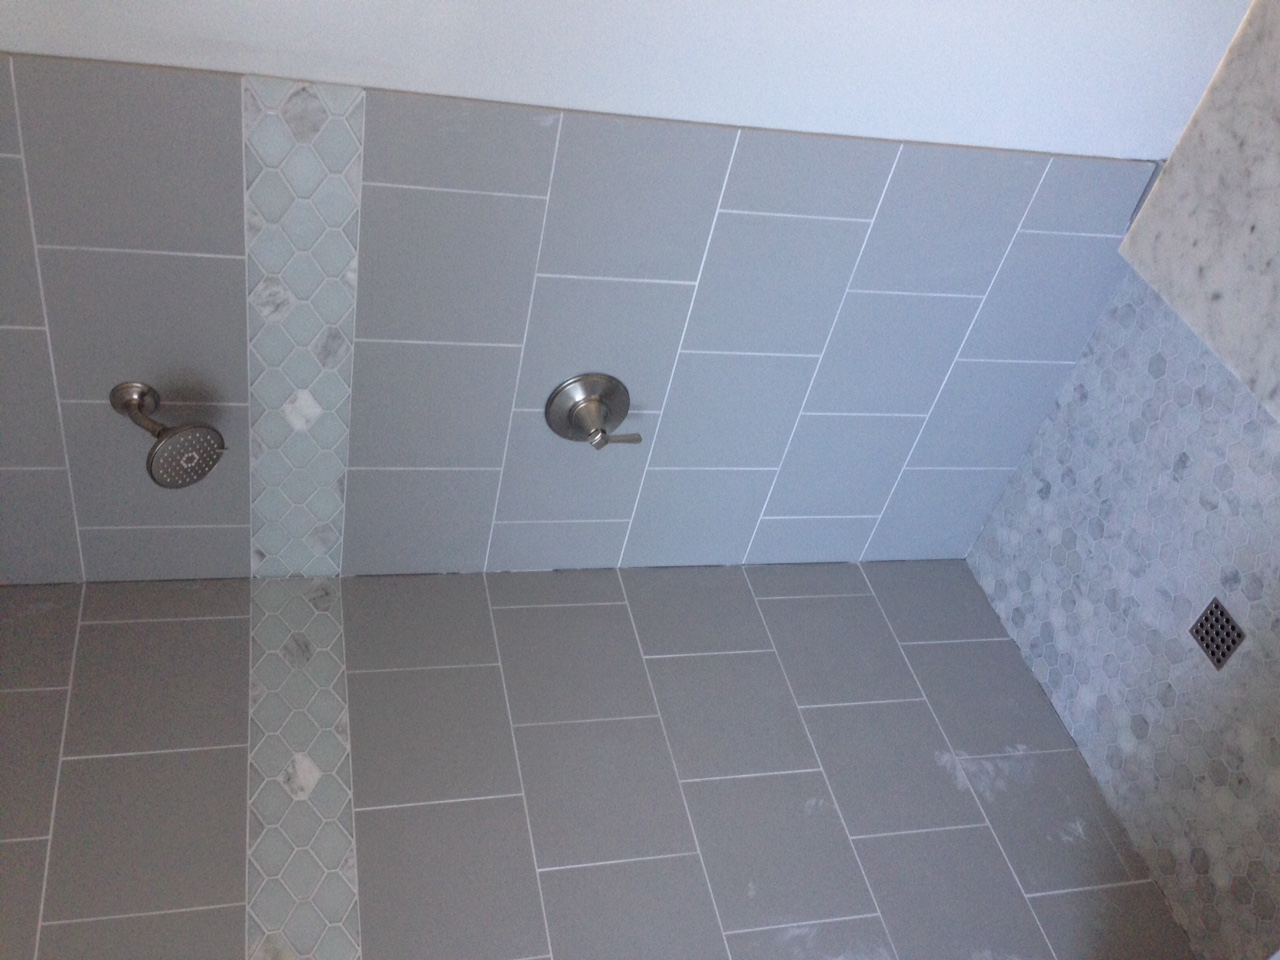 Finished shower with new shower valve and trim